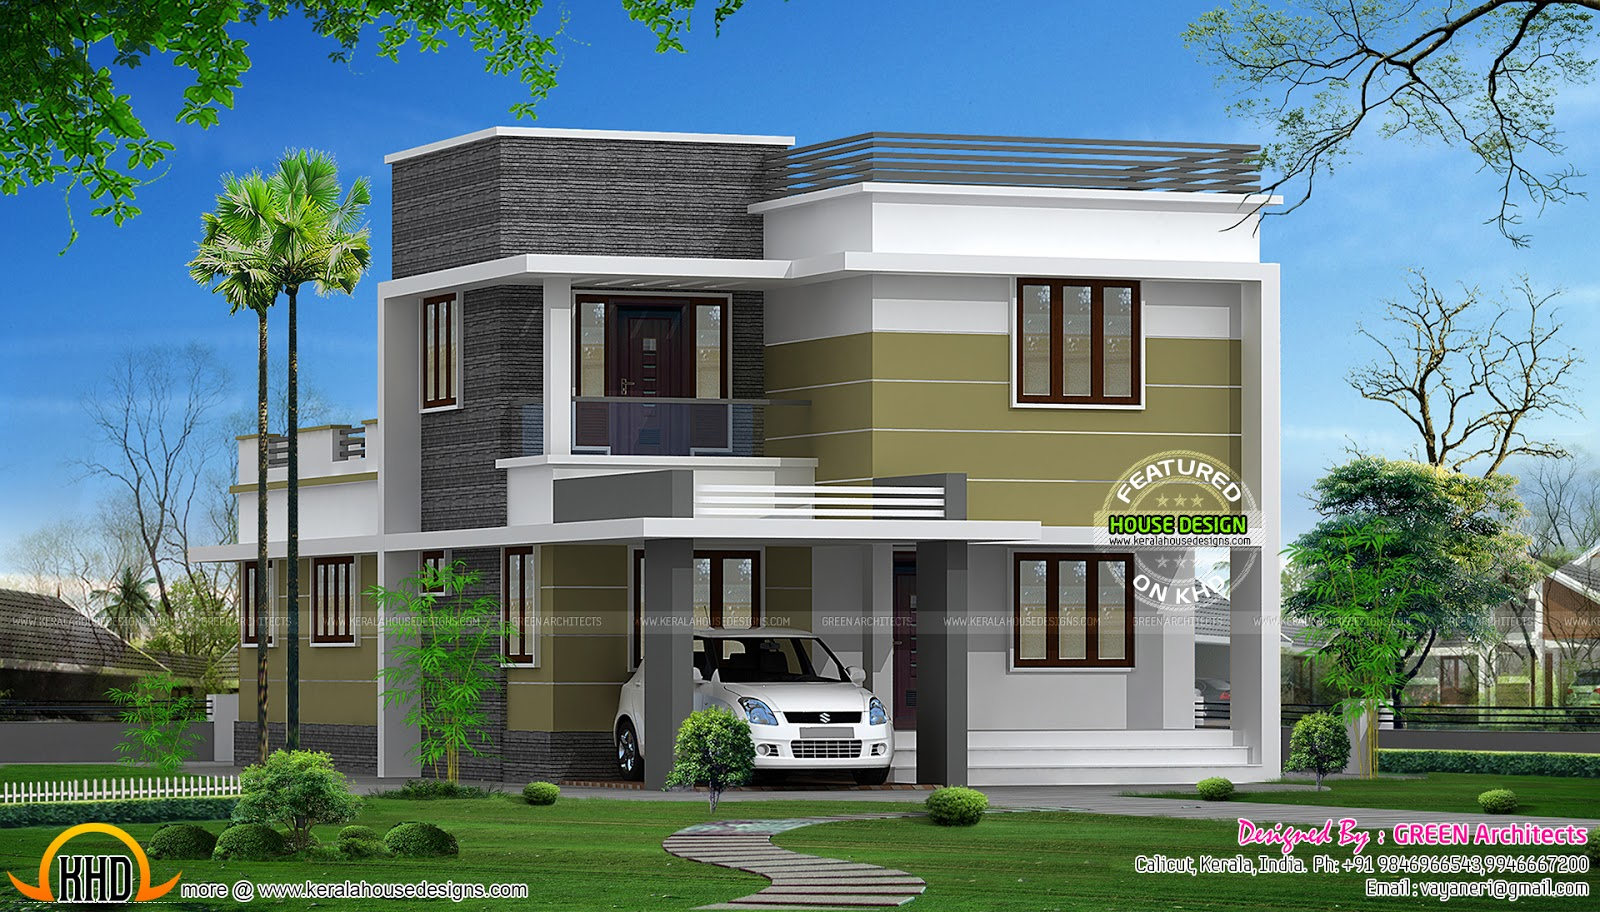 186 sq m small double storied house in kerala kerala for Beautiful small home designs